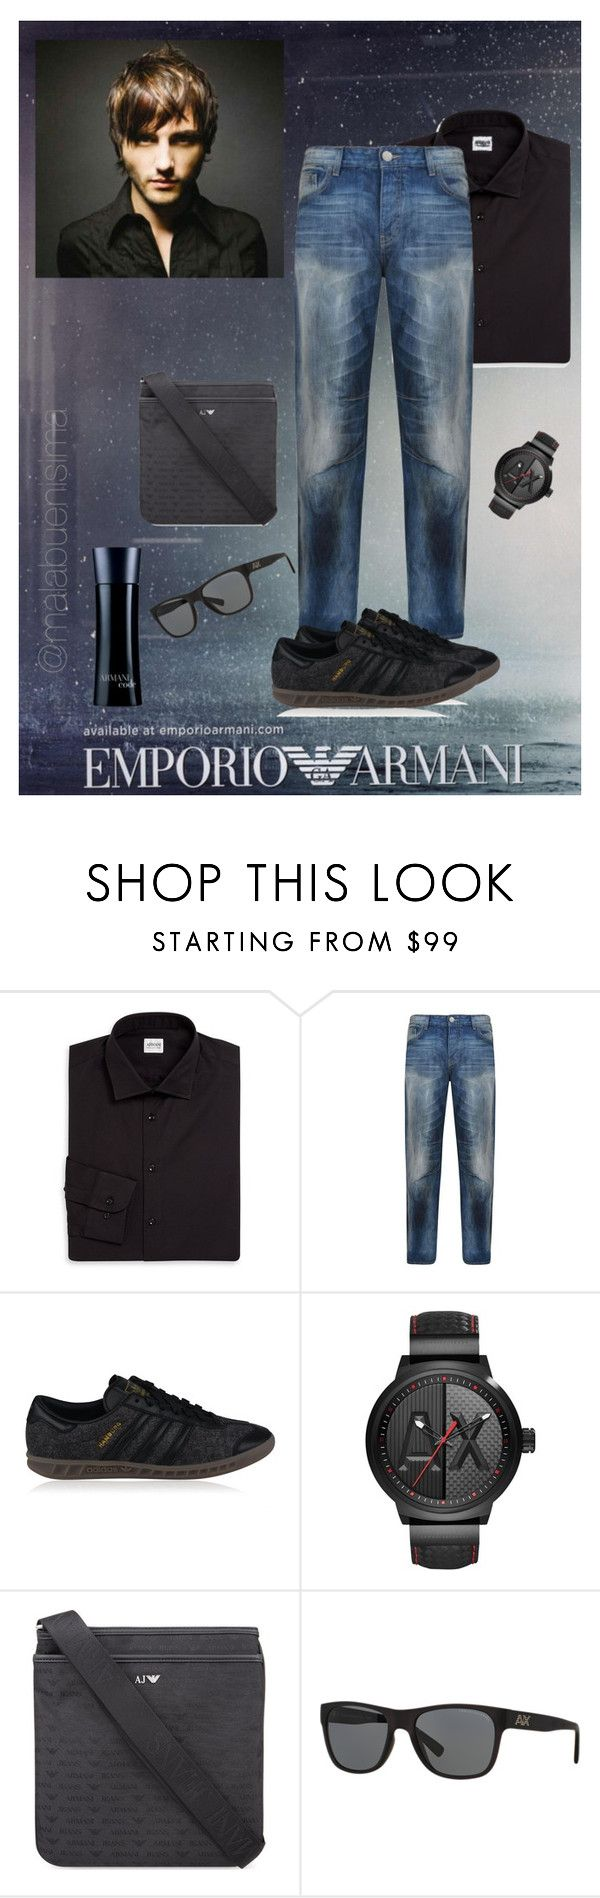 """Armani for mens"" by malabuenisima ❤ liked on Polyvore featuring Emporio Armani, Armani Collezioni, Armani Jeans, adidas Originals, Armani Exchange, Giorgio Armani, men's fashion and menswear"